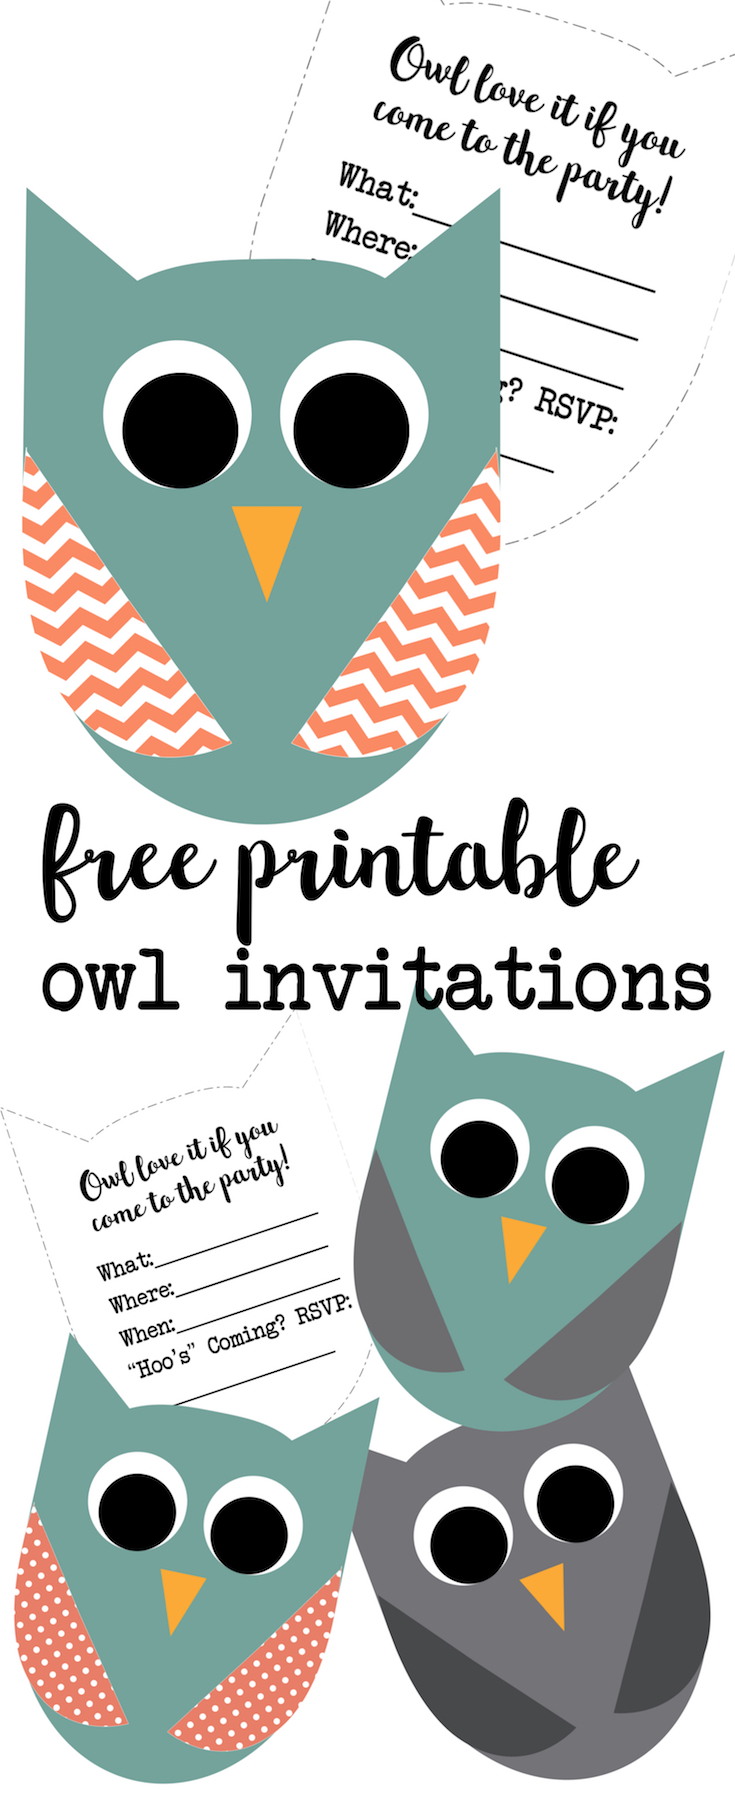 Free Printable Owl Invitations. These cute owl invitations are great for an owl birthday invitation or an owl baby shower invitation. Free printable owl party invitations.